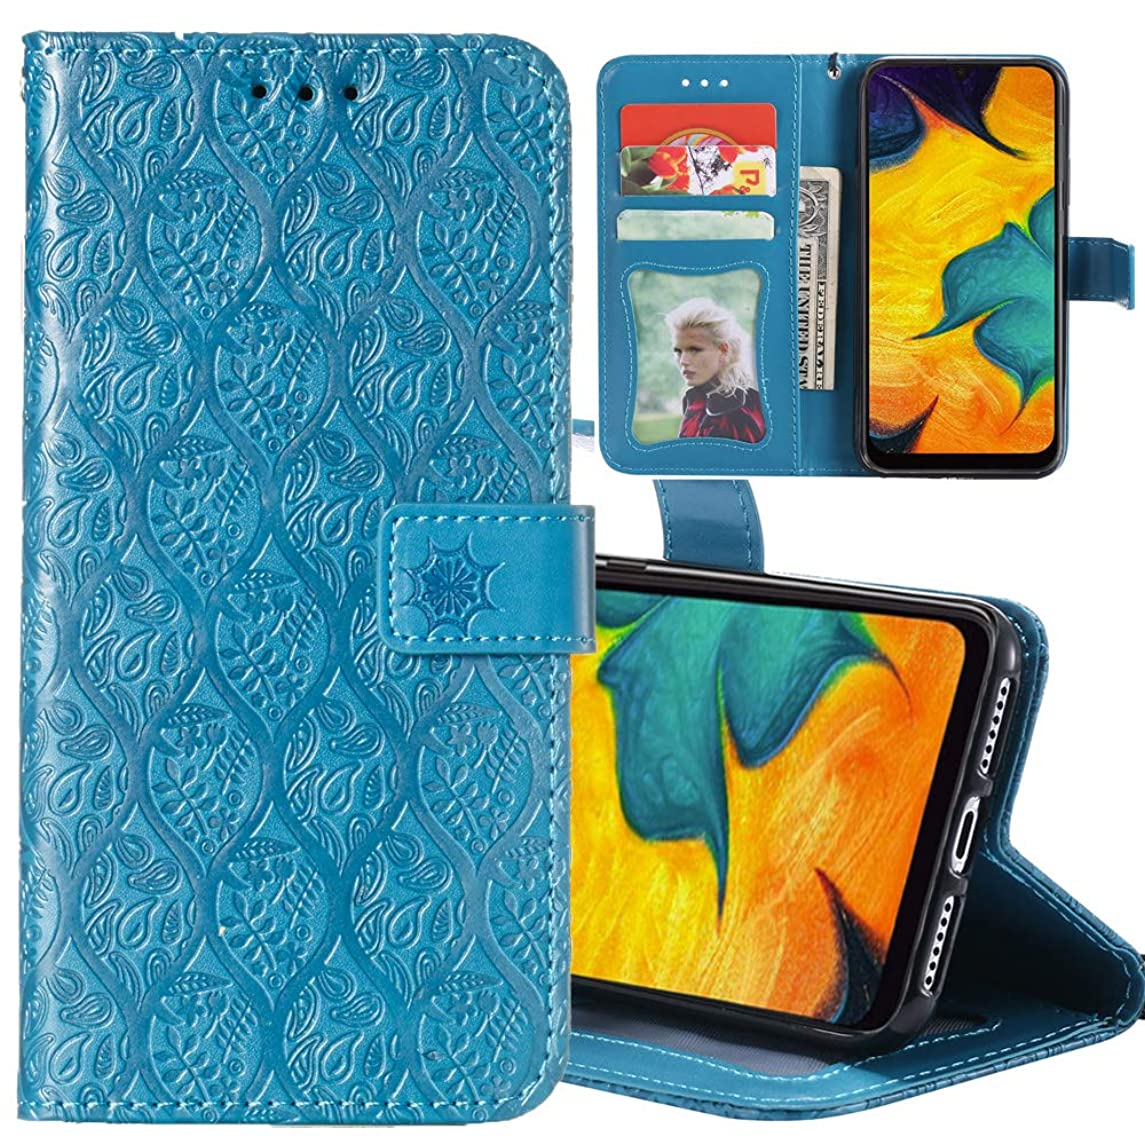 Galaxy M20 Case,Case for Galaxy M20,Designed for Samsung Galaxy M20 Case Wallet Leather Folio Flip Phone Protective Case Cover with Card Slots Holder and Kickstand Mandala Floral Flower,Blue